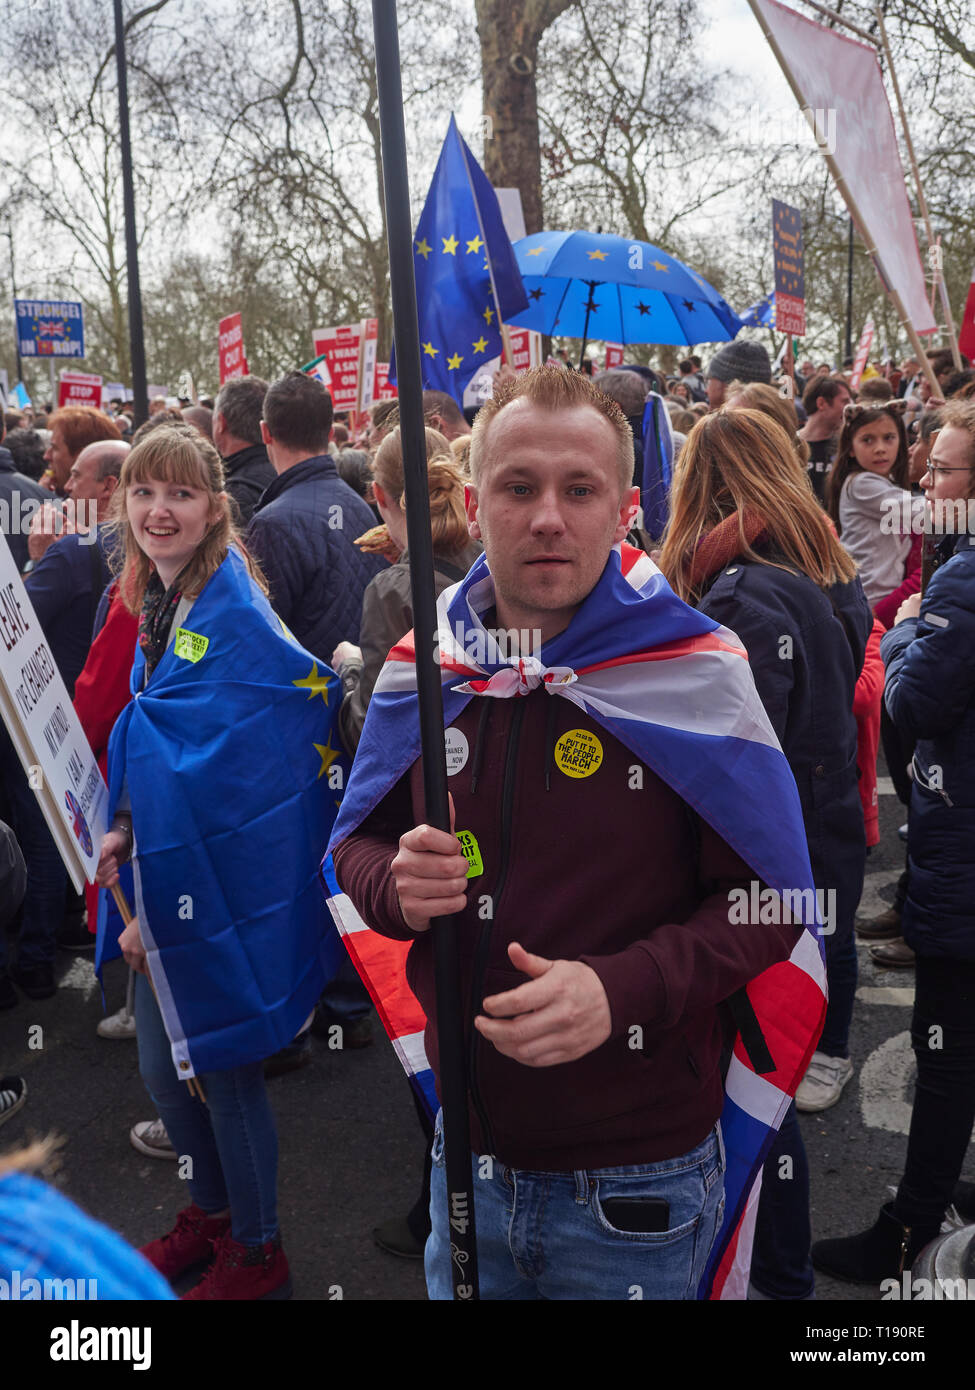 London, England, UK. 23rd March 2019, Anti Brexit Protestor draped in EU Flag on the March in London UK. Credit J Walters/Alamy Live News - Stock Image